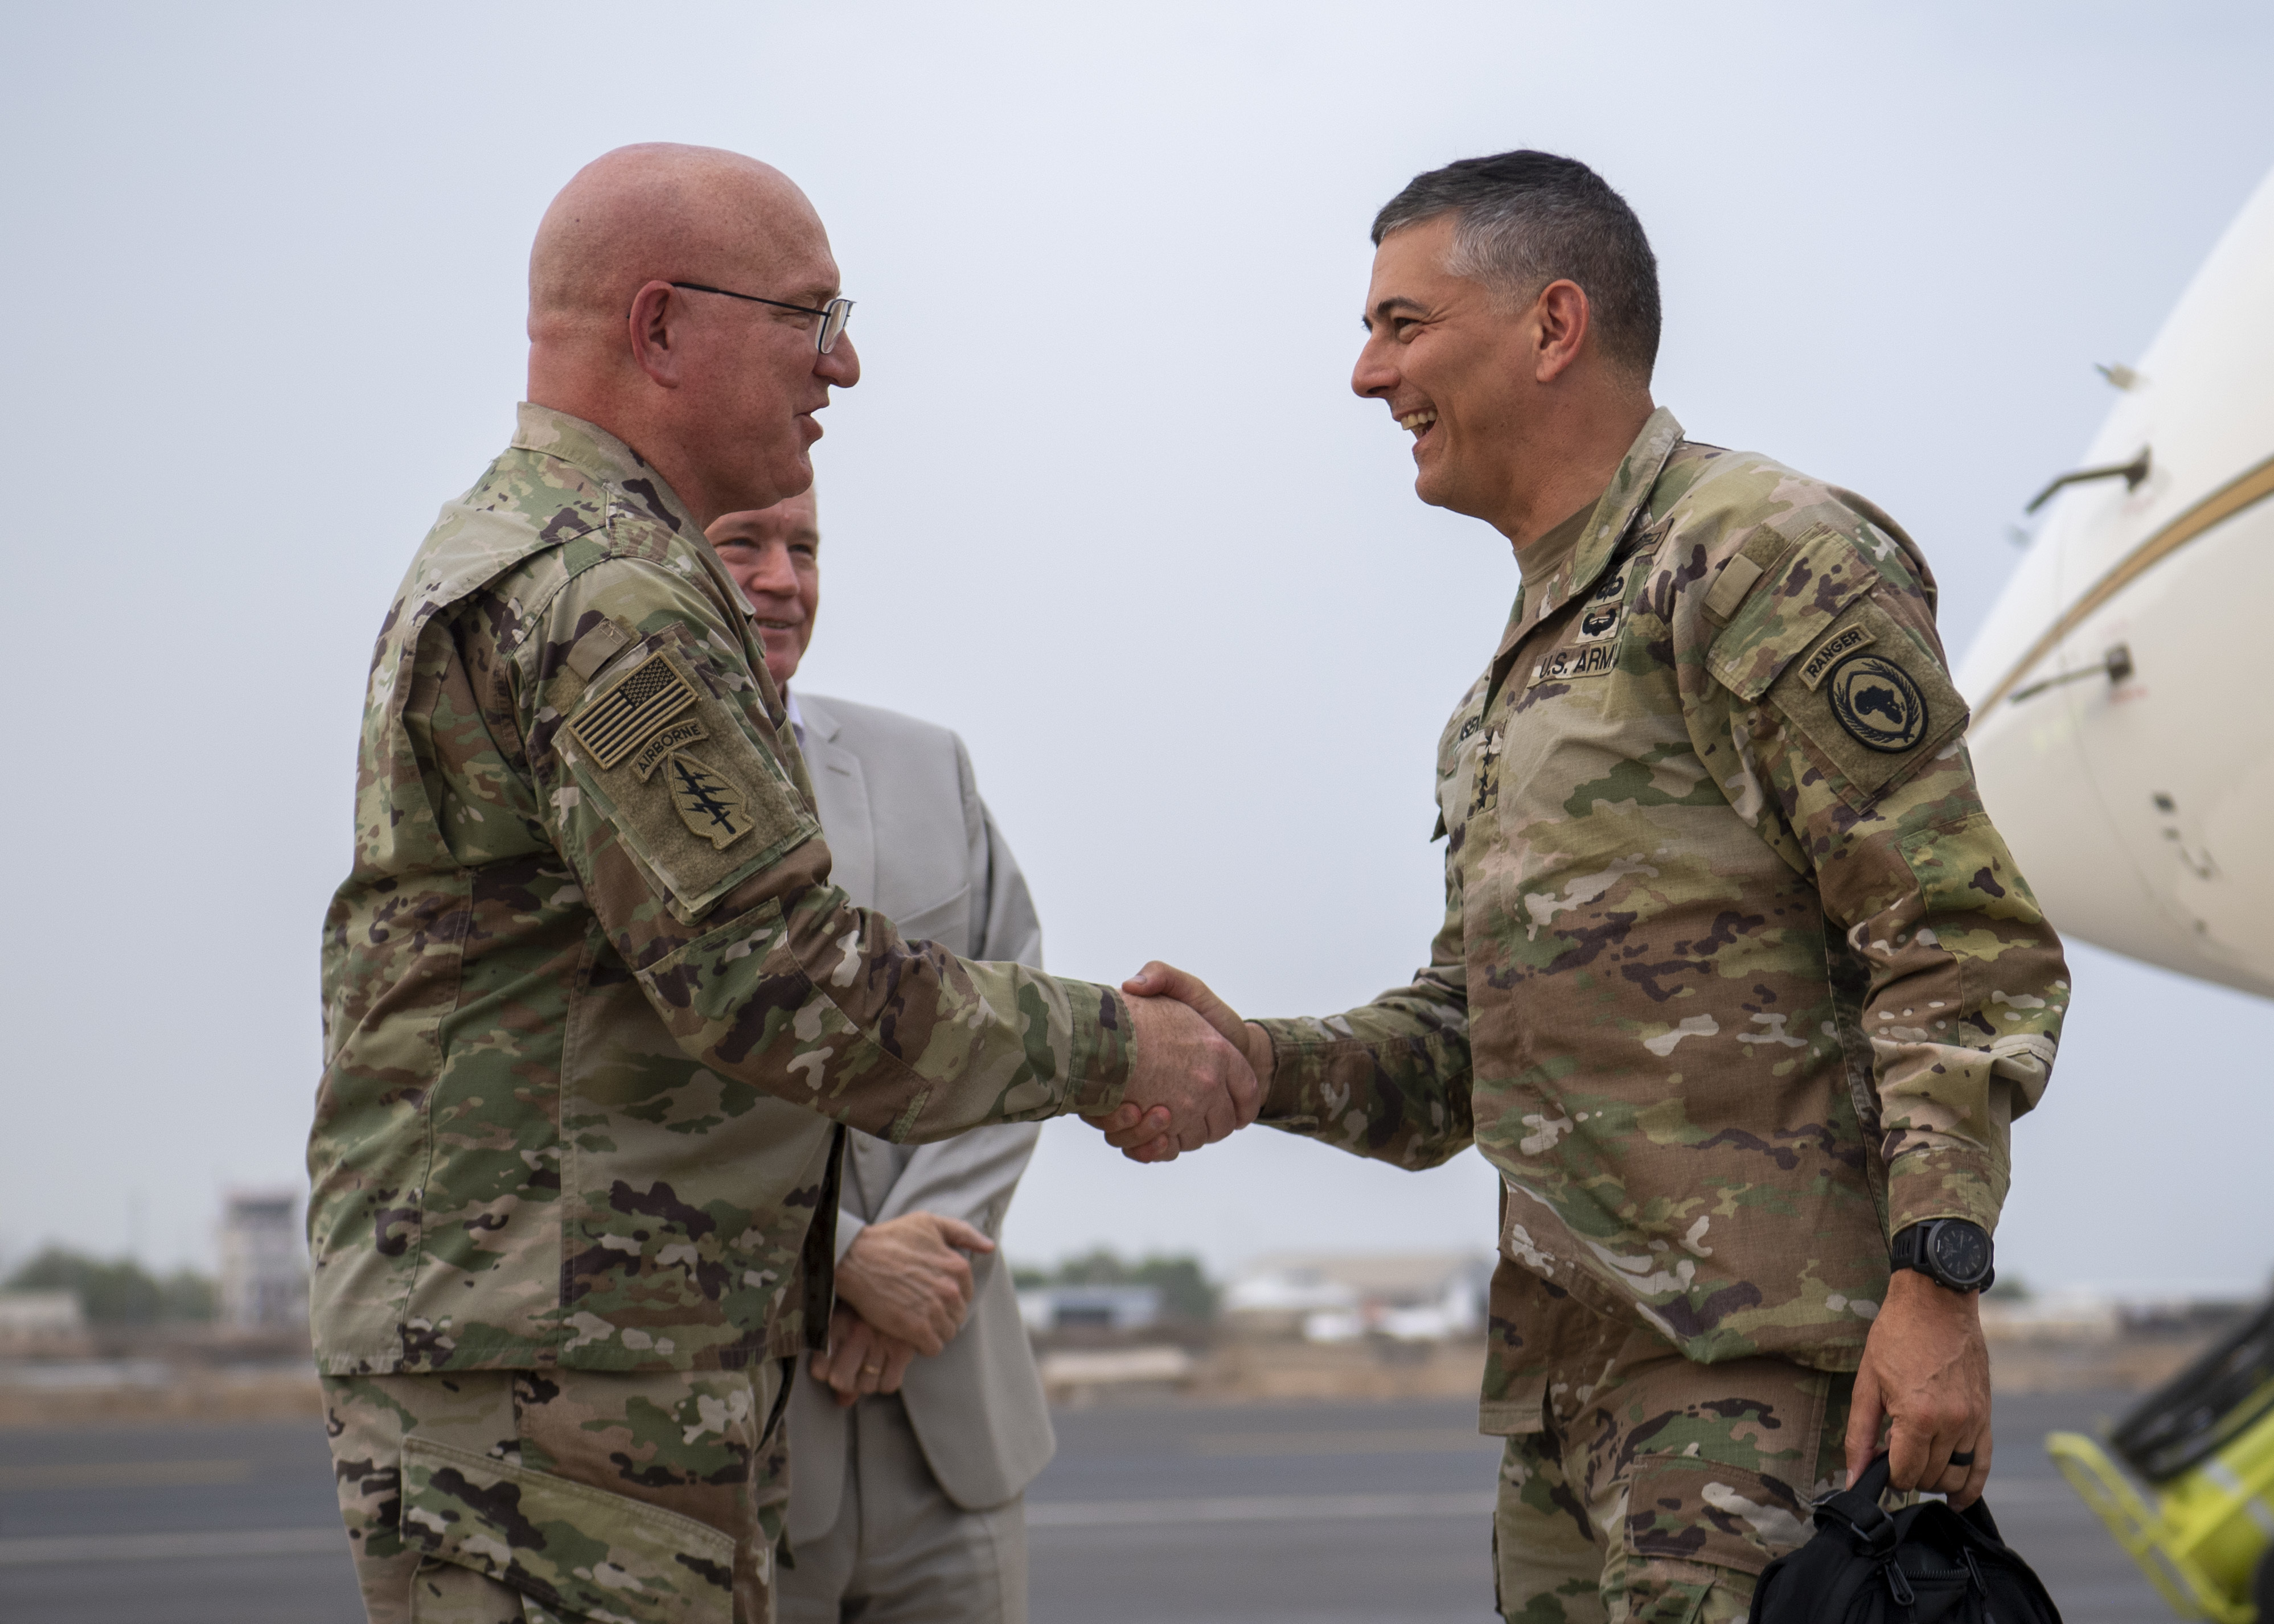 U.S. Army Gen. Stephen J. Townsend, commander, U.S. Africa Command (AFRICOM), right, is greeted by U.S. Army Maj. Gen. Michael Turello, commanding general, Combined Joint Task Force-Horn of Africa (CJTF-HOA), at Camp Lemonnier, Djibouti, August 5, 2019. Townsend took command of AFRICOM on July 26, 2019. As commander of AFRICOM Townsend is in charge of military relations with African nations, the African Union and African regional security organizations. Townsend visited Djibouti as part of his familiarization of CJTF-HOA. (U.S. Air Force photo by Staff Sgt. J.D. Strong II)